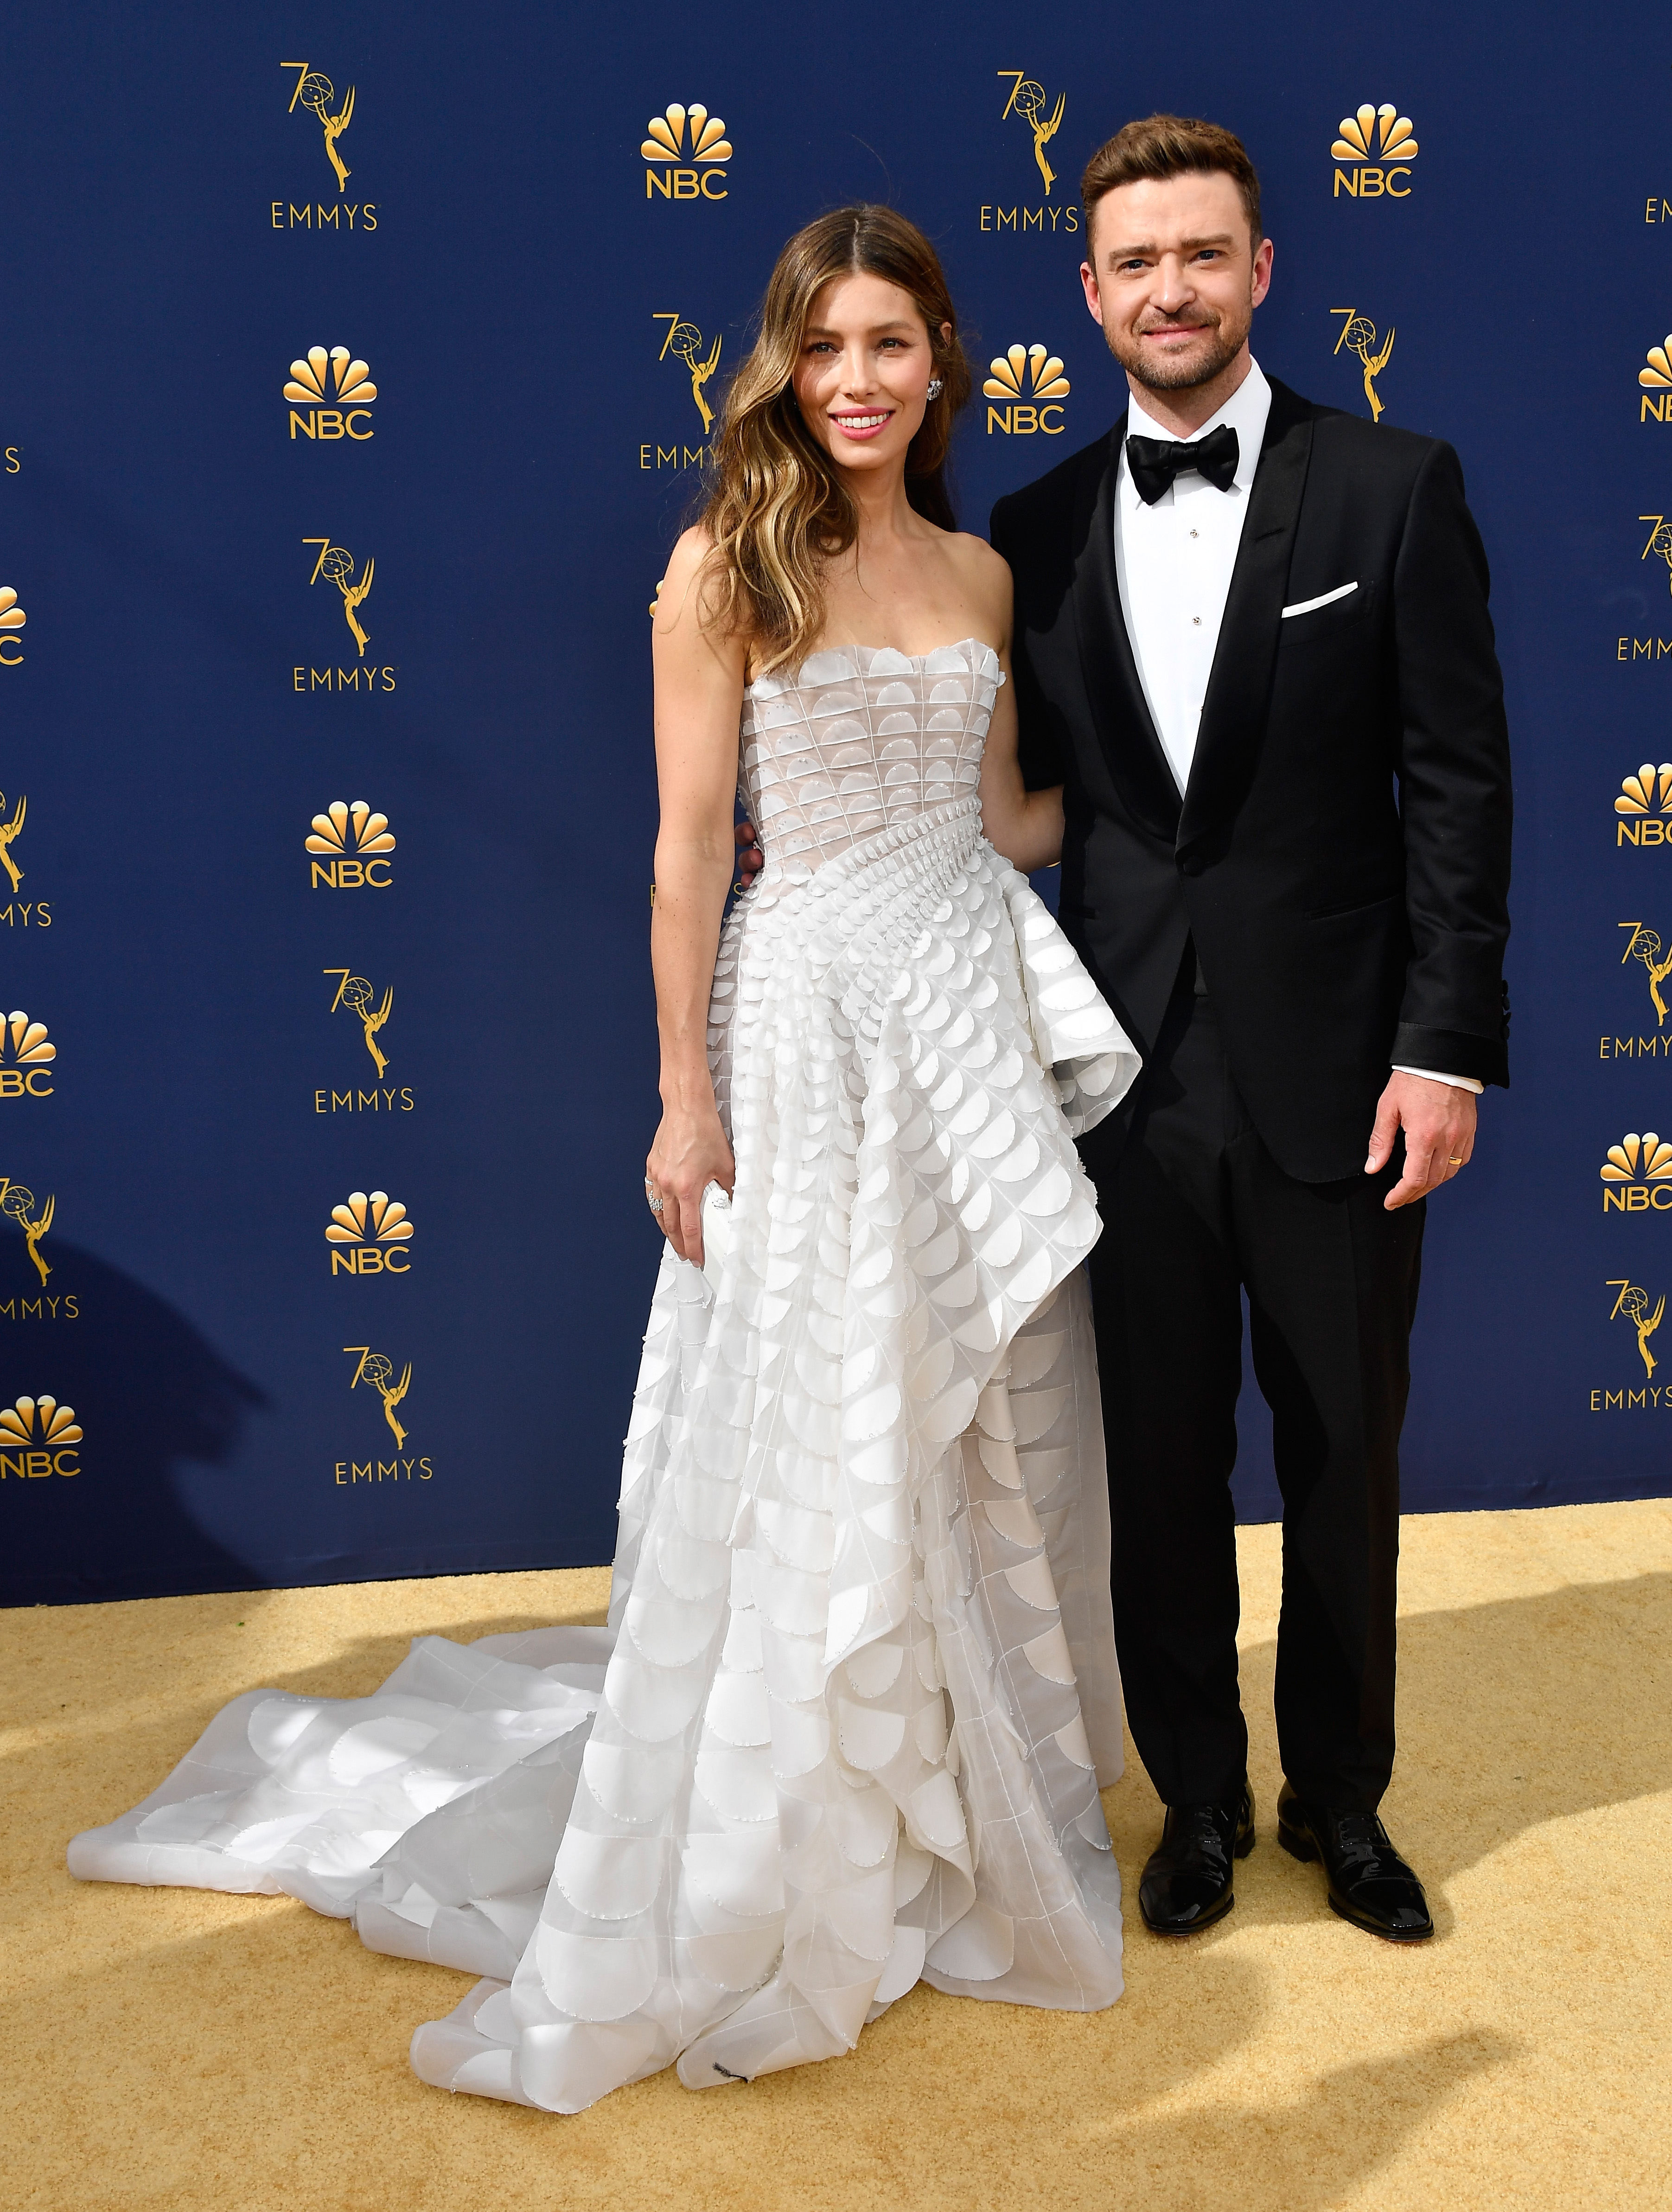 Jessica Biel (L) and Justin Timberlake attend the 70th Emmy Awards at Microsoft Theater on September 17, 2018 in Los Angeles, California.